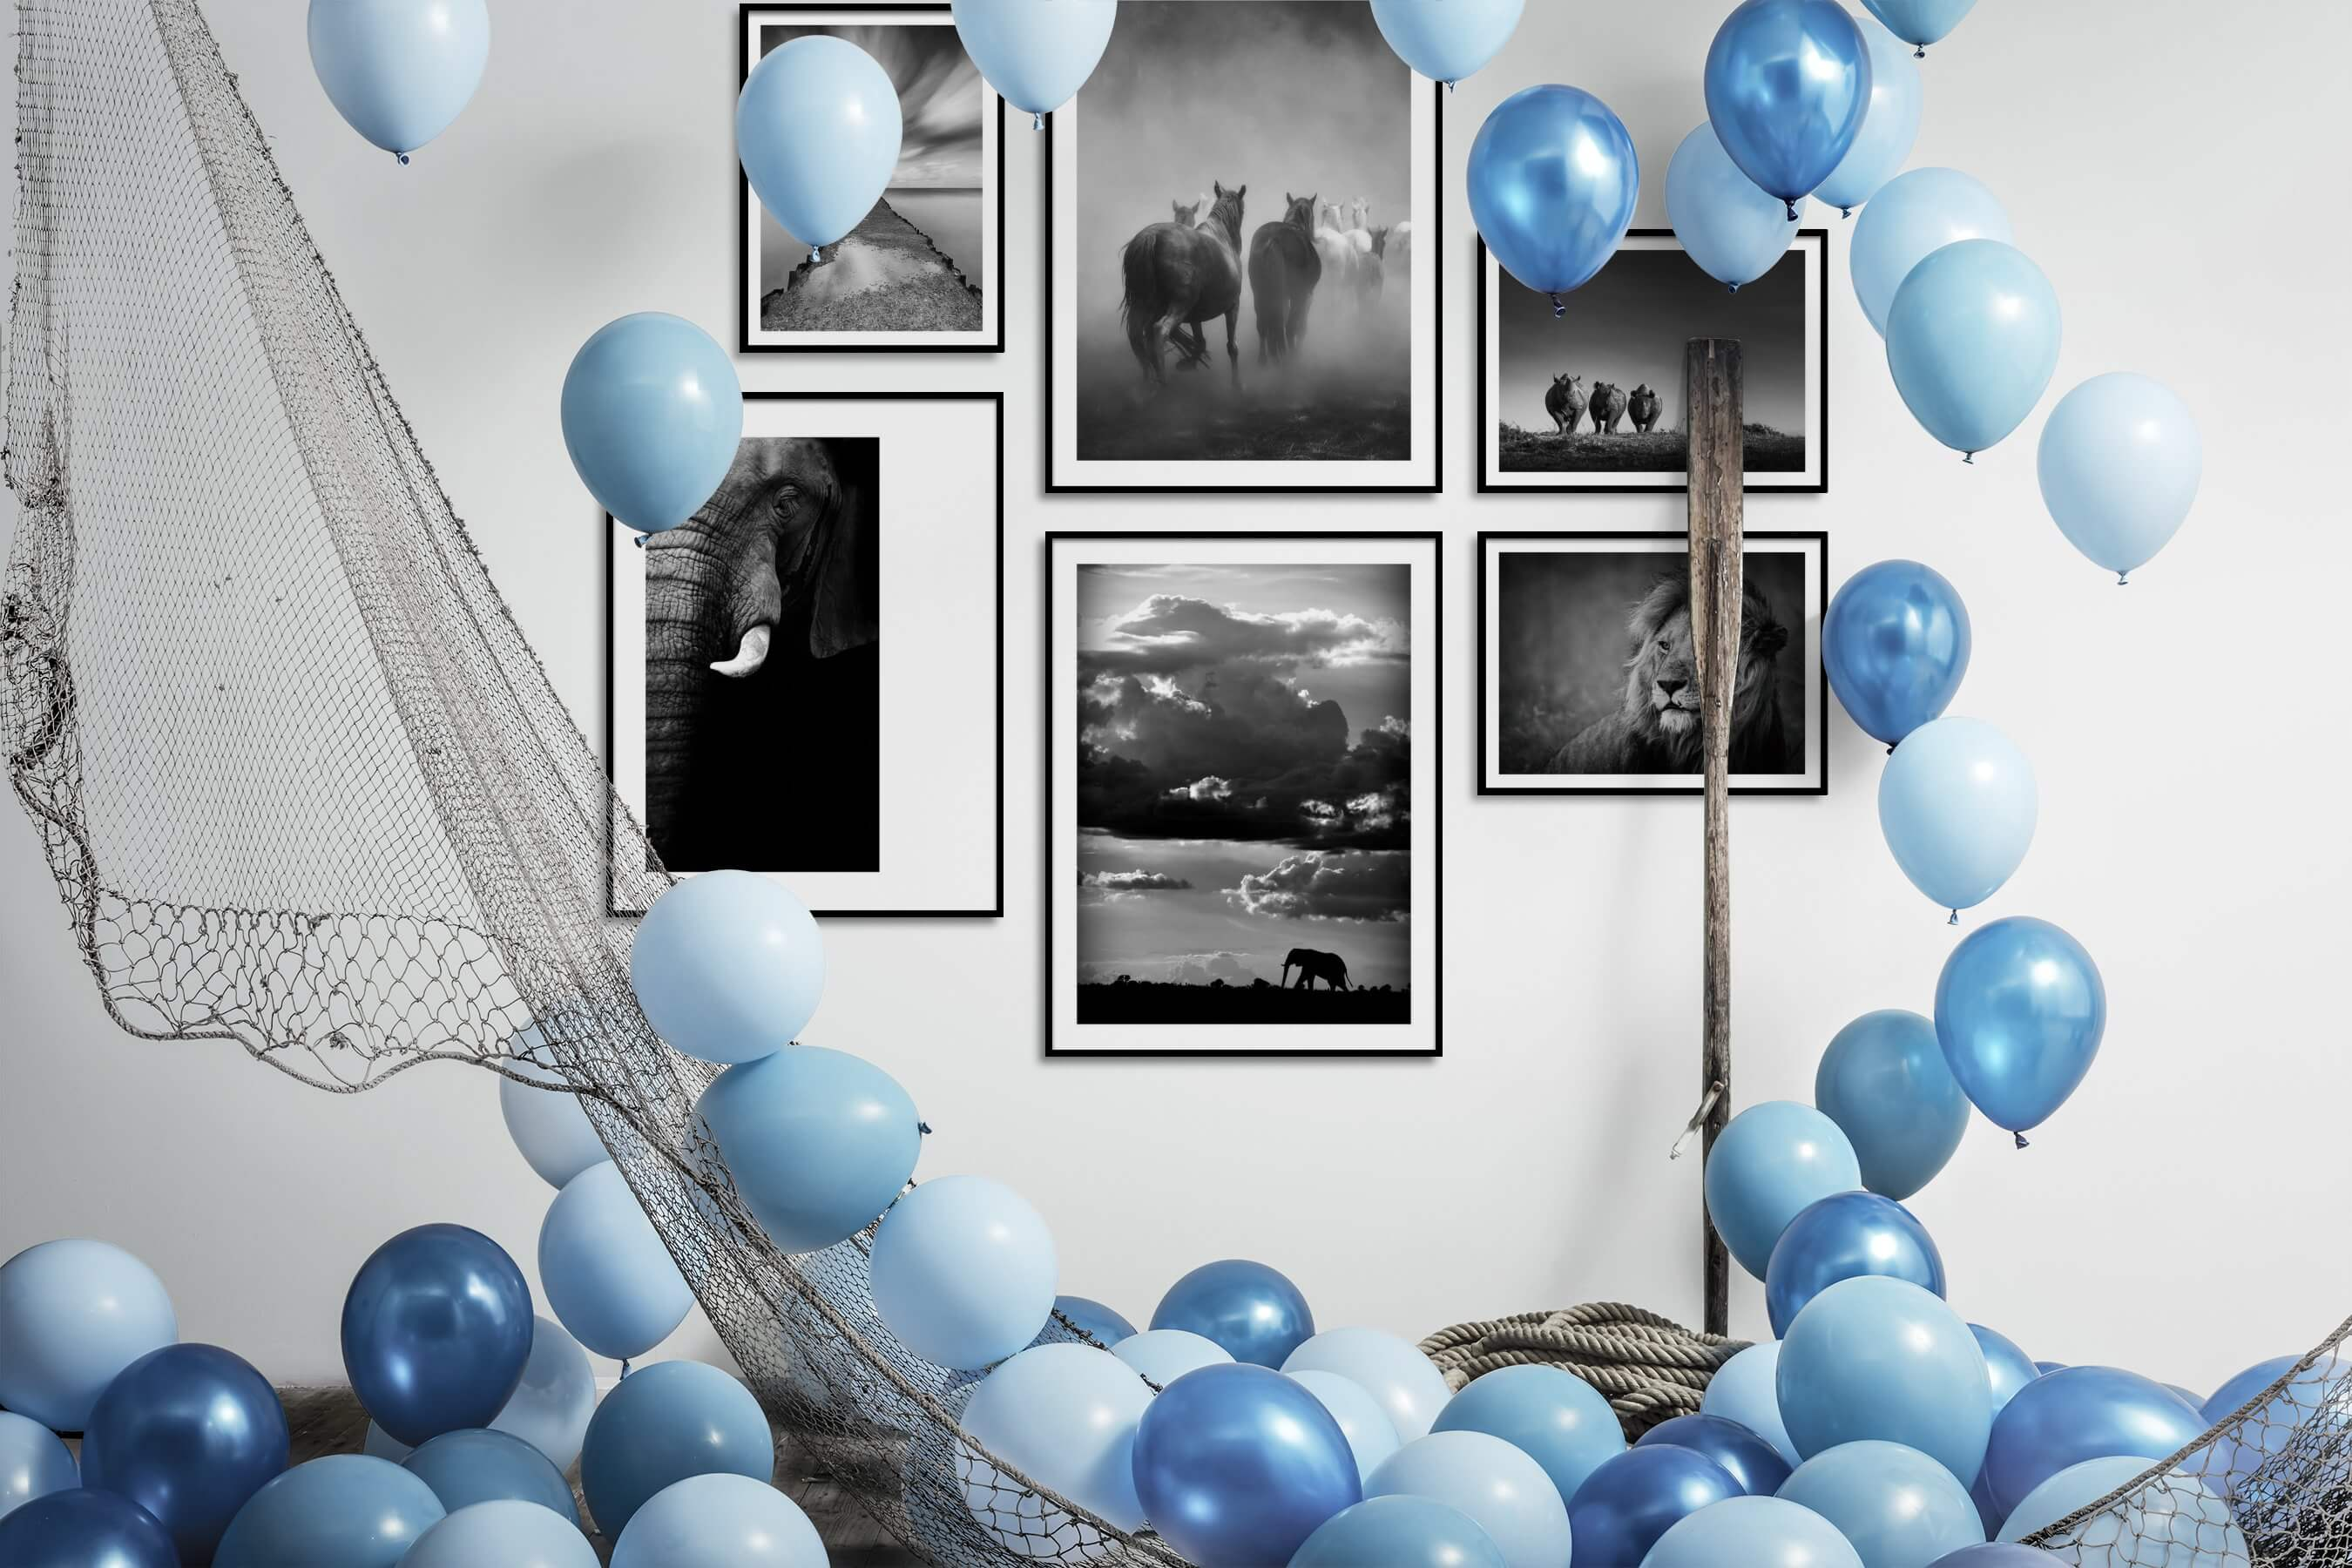 Gallery wall idea with six framed pictures arranged on a wall depicting Black & White, Beach & Water, Mindfulness, Animals, Country Life, For the Minimalist, and For the Moderate